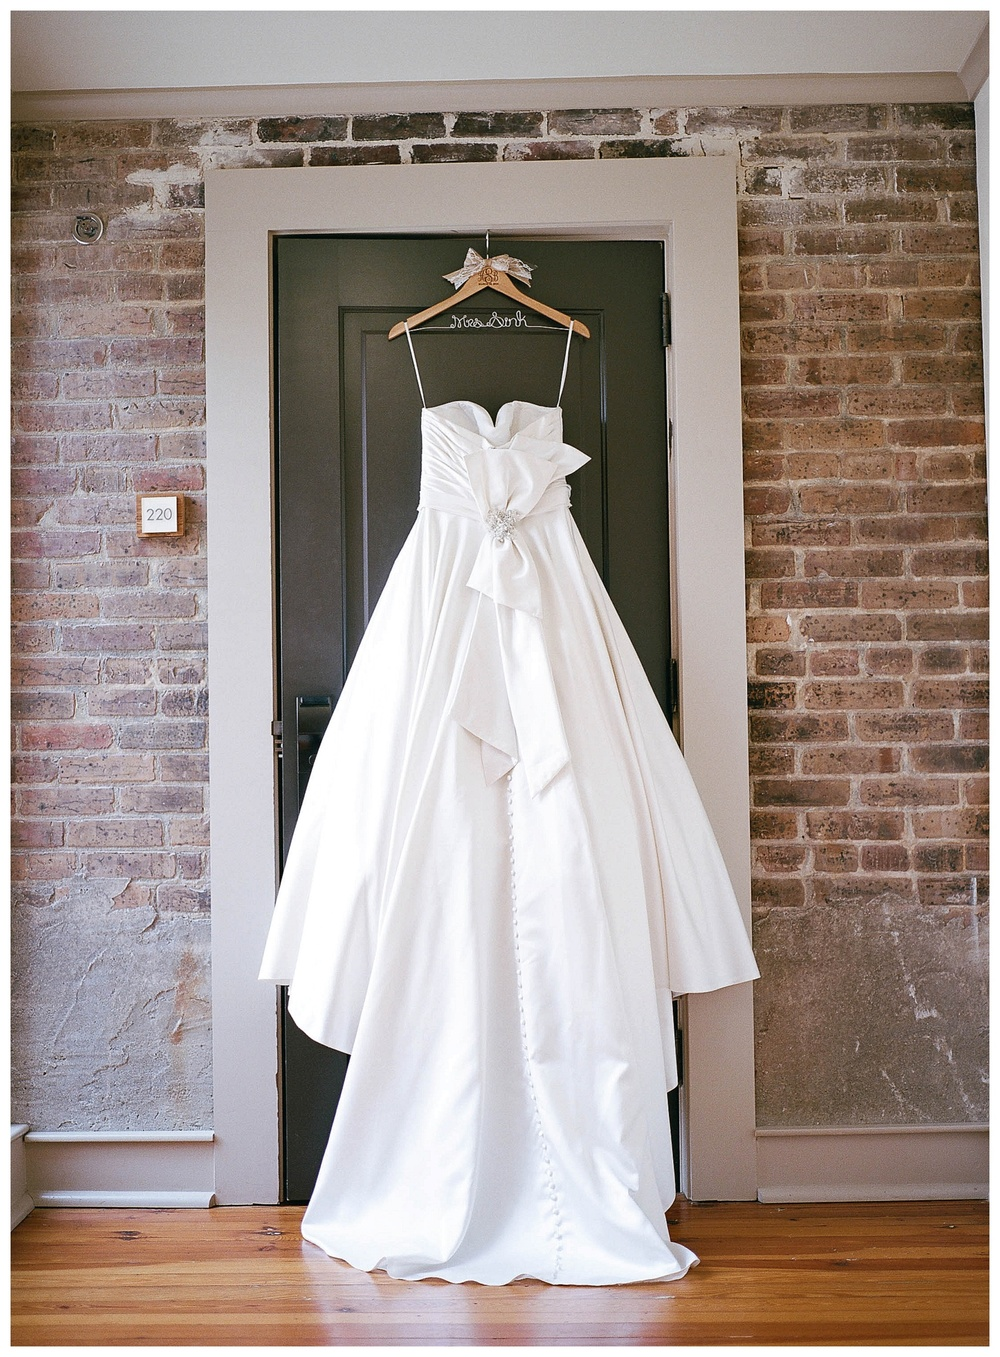 Bridal gown hanging on penthouse door, Hotel Florence, SC - wedding at Hotel Florence